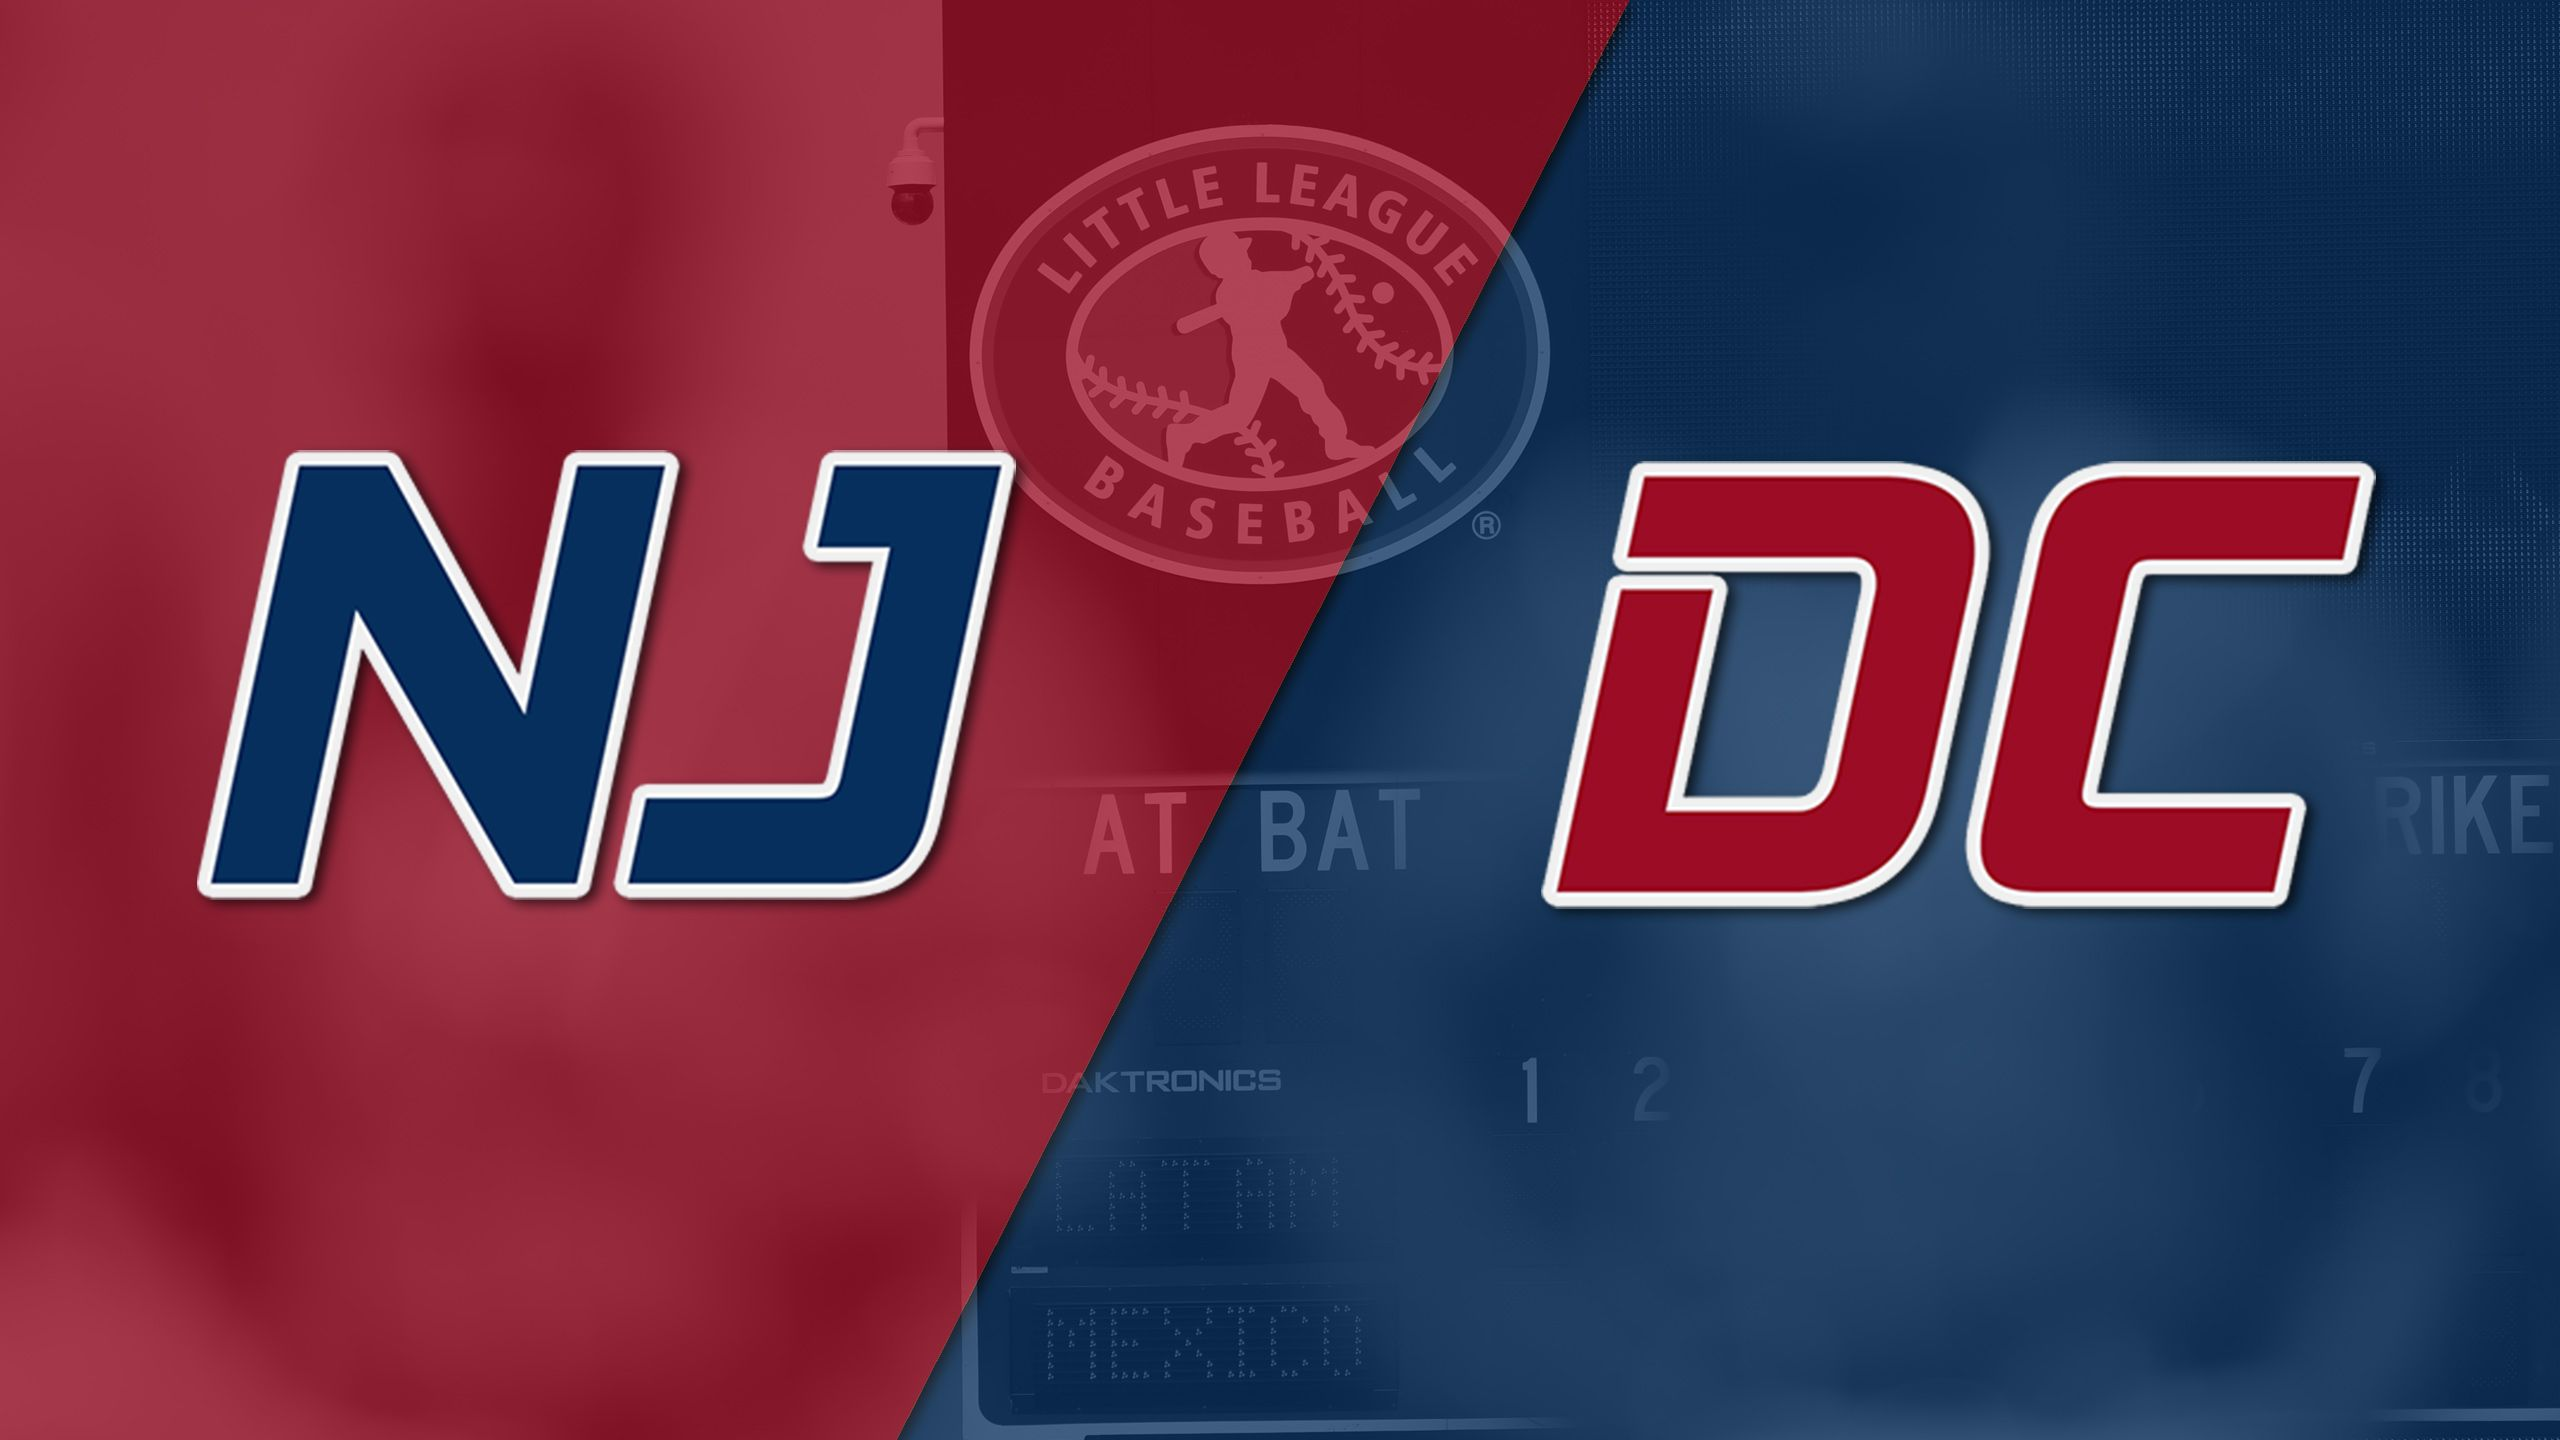 Jackson, New Jersey vs. Washington, D.C. (Mid-Atlantic Regional)